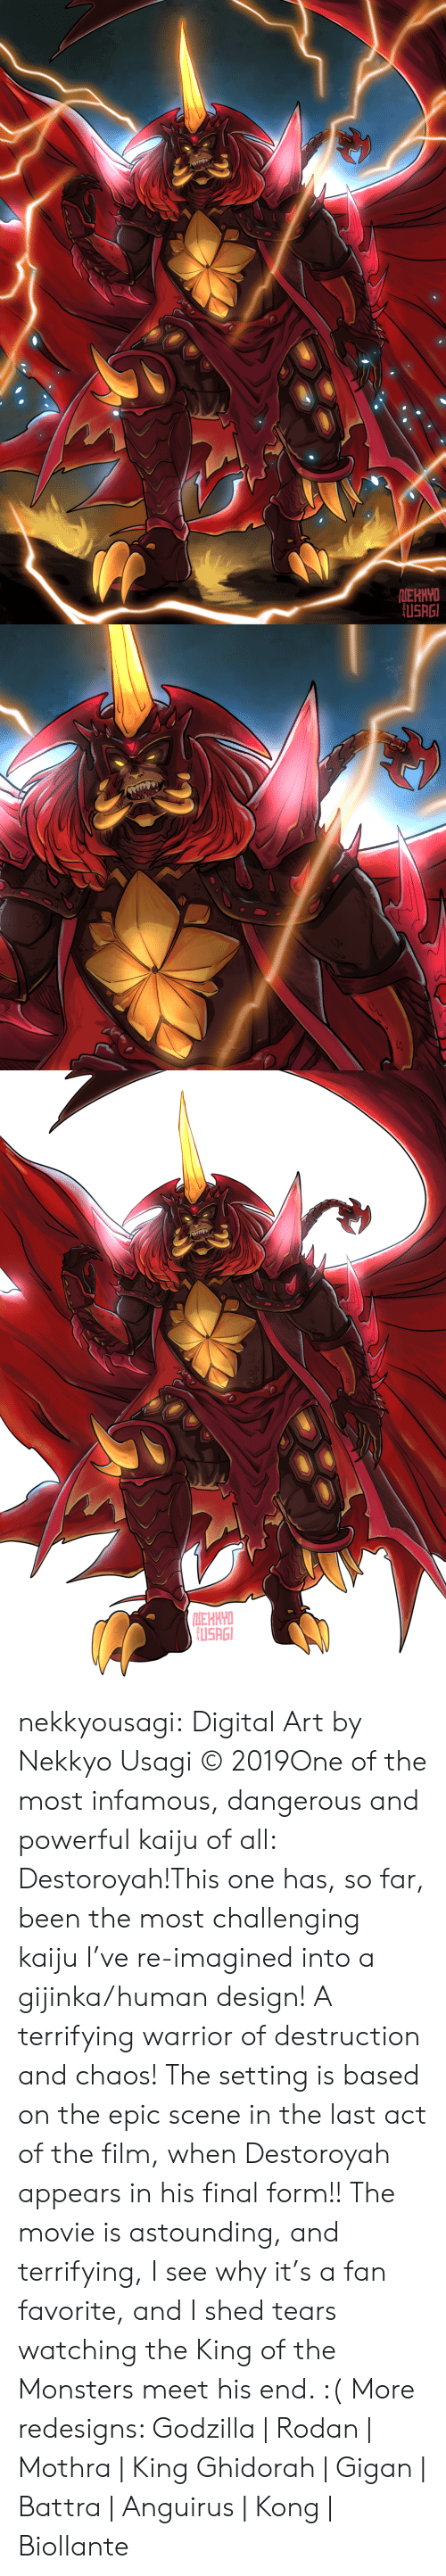 Queen Of: IEHNYD  USRGI   rLEHKYD  USAGI nekkyousagi:  Digital Art by Nekkyo Usagi © 2019One of the most infamous, dangerous and powerful kaiju of all: Destoroyah!This one has, so far, been the most challenging kaiju I've re-imagined into a gijinka/human design! A terrifying warrior of destruction and chaos! The setting is based on the epic scene in the last act of the film, when Destoroyah appears in his final form!! The movie is astounding, and terrifying, I see why it's a fan favorite, and I shed tears watching the King of the Monsters meet his end. :( More redesigns: Godzilla | Rodan | Mothra | King Ghidorah | Gigan | Battra | Anguirus | Kong | Biollante